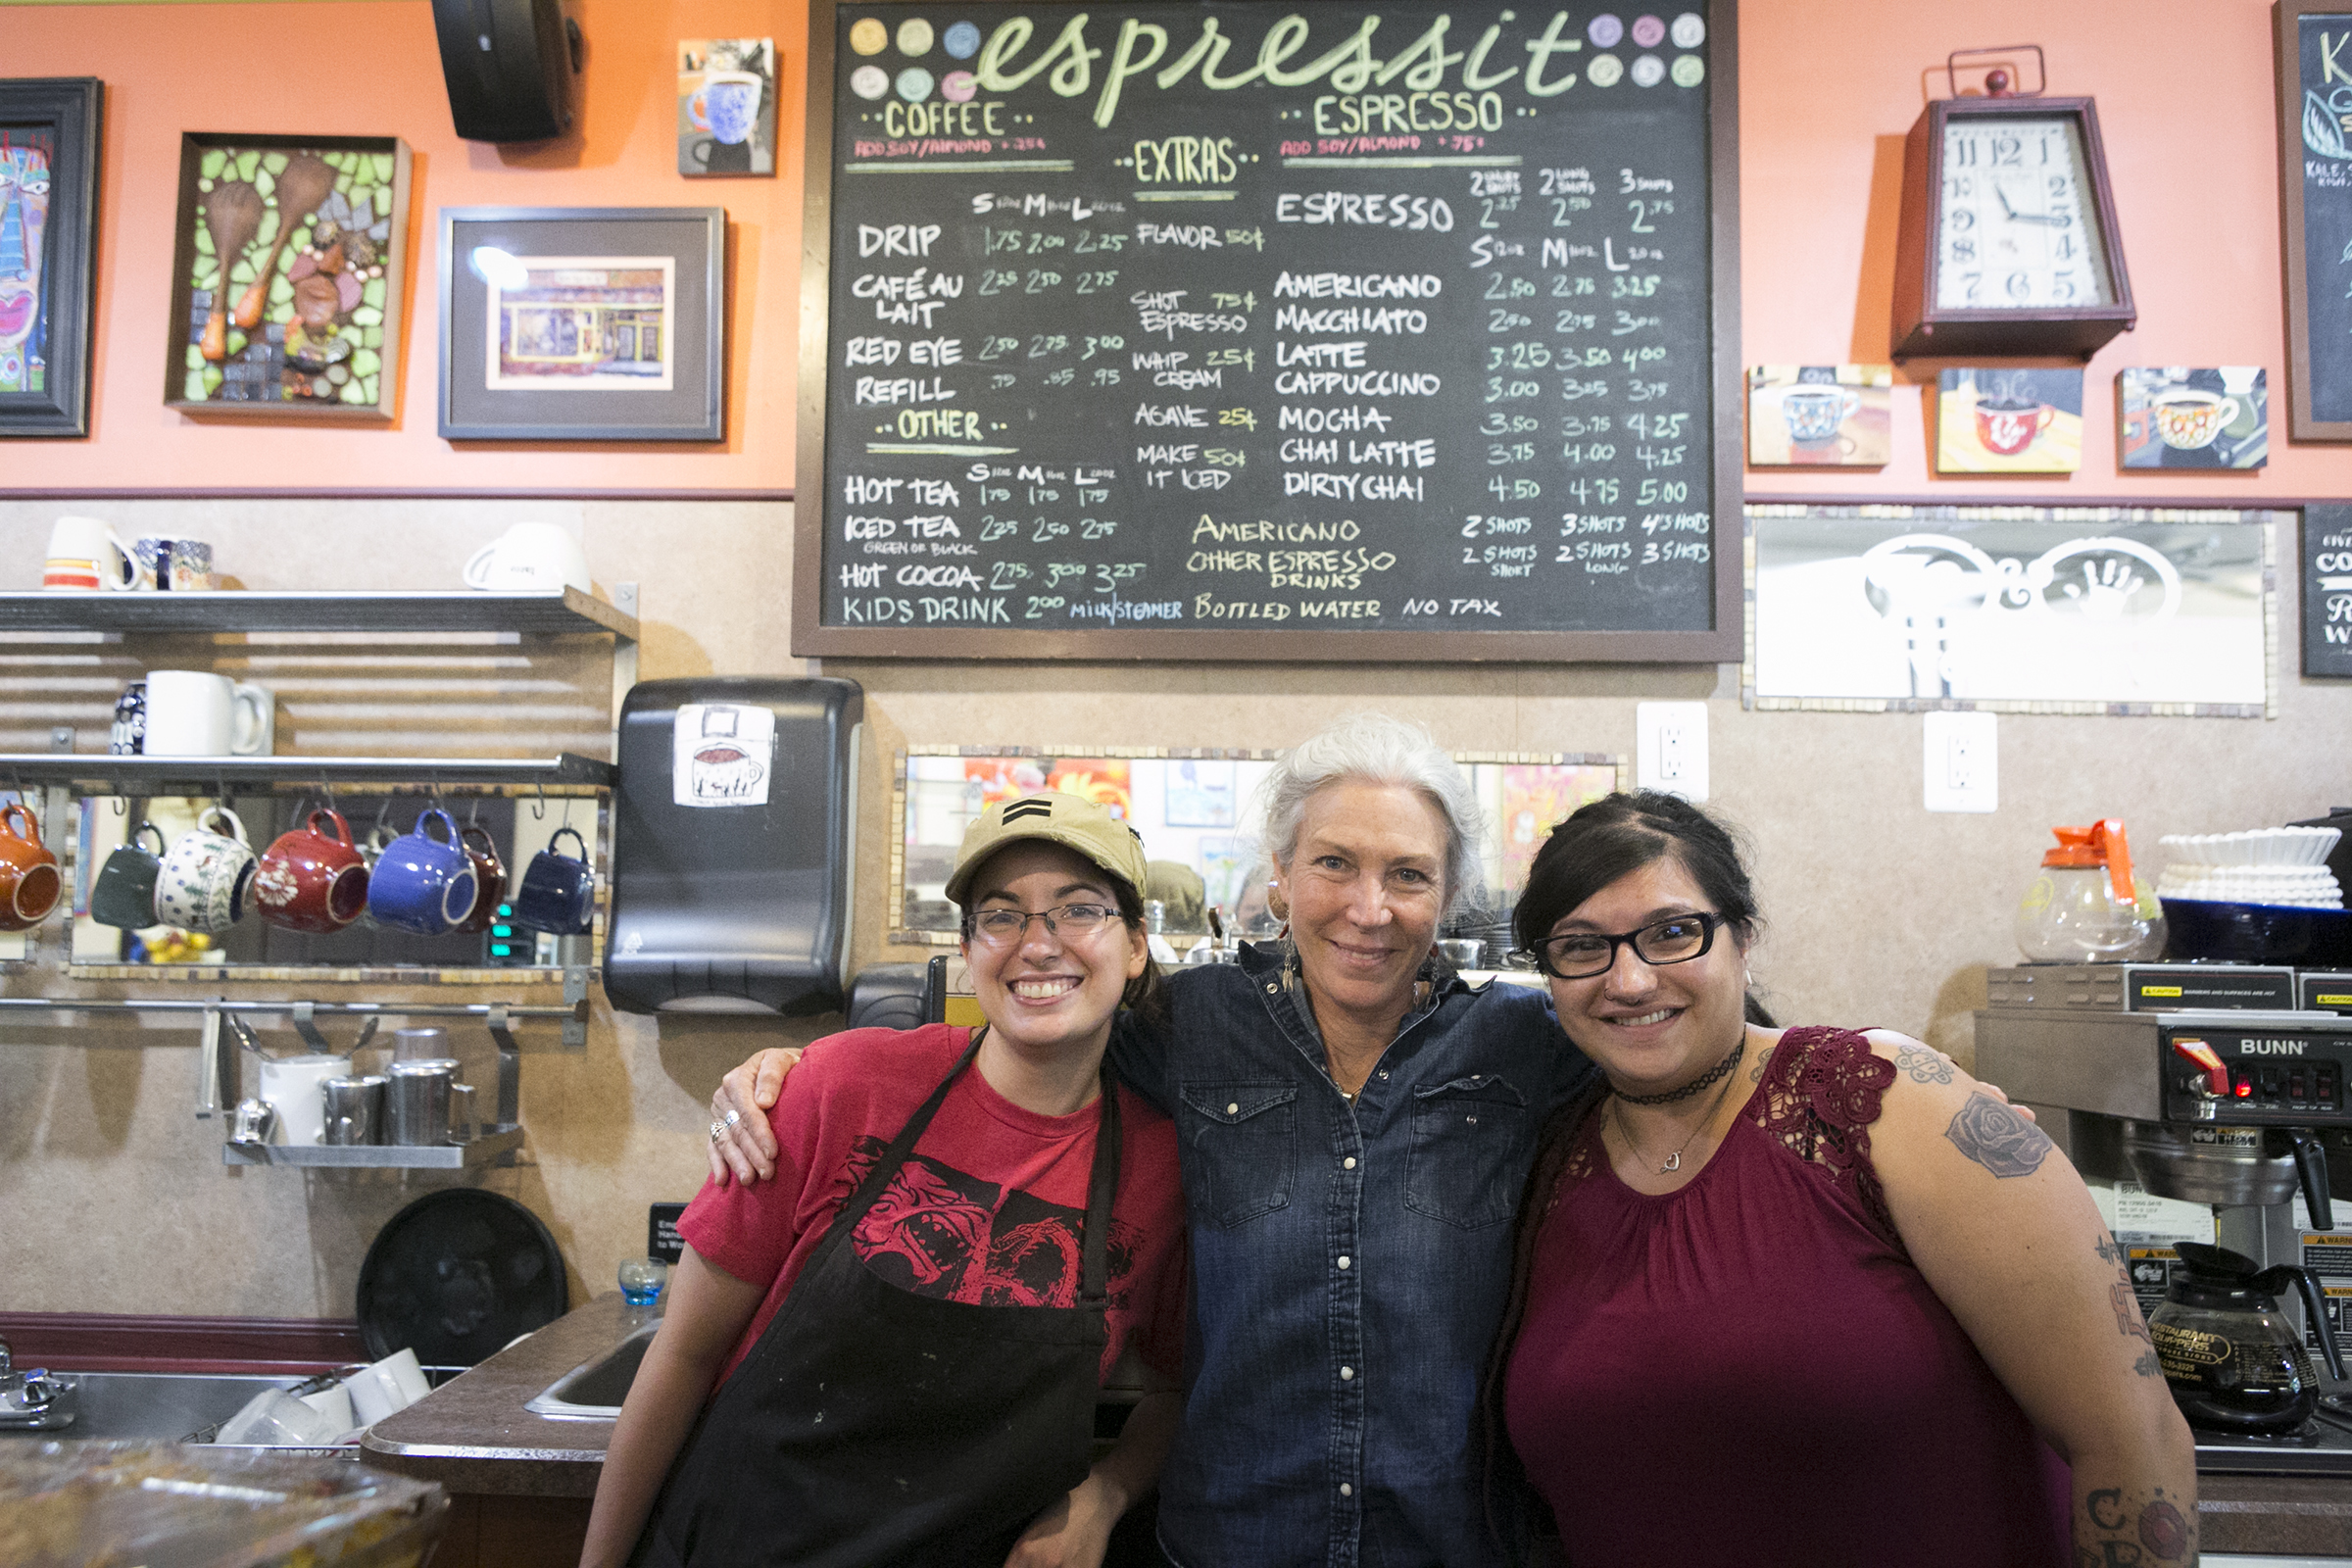 Owner Stacey Douglas (center) and managers Kim Mikhail and Kat Agront stand at the counter at Espressit Coffee, a community gathering spot on Haddon Avenue in Westmont, NJ. After 10 years in business, Douglas plans to sell the shop.